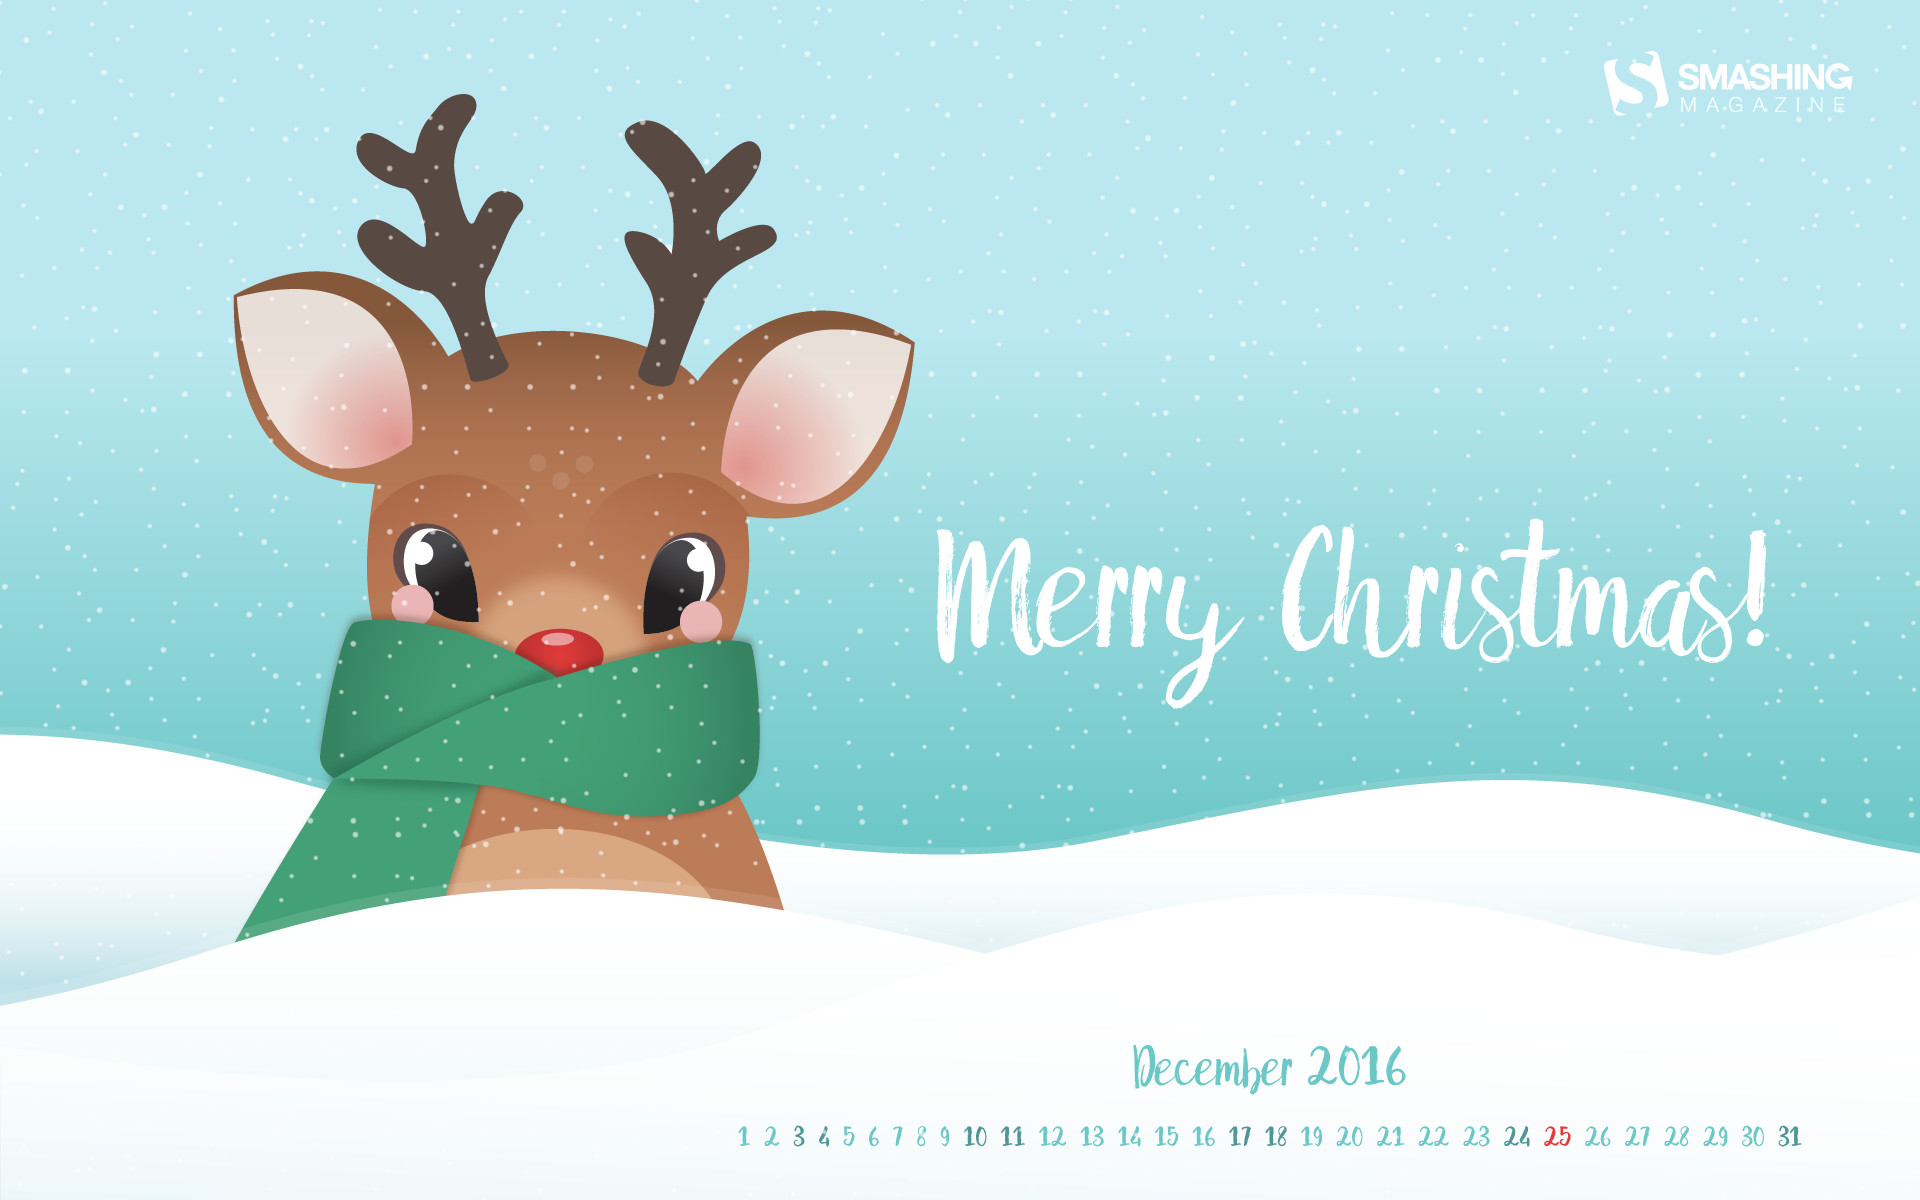 1920x1200 desktop wallpaper calendars december 2016 festive christmas rh  smashingmagazine com